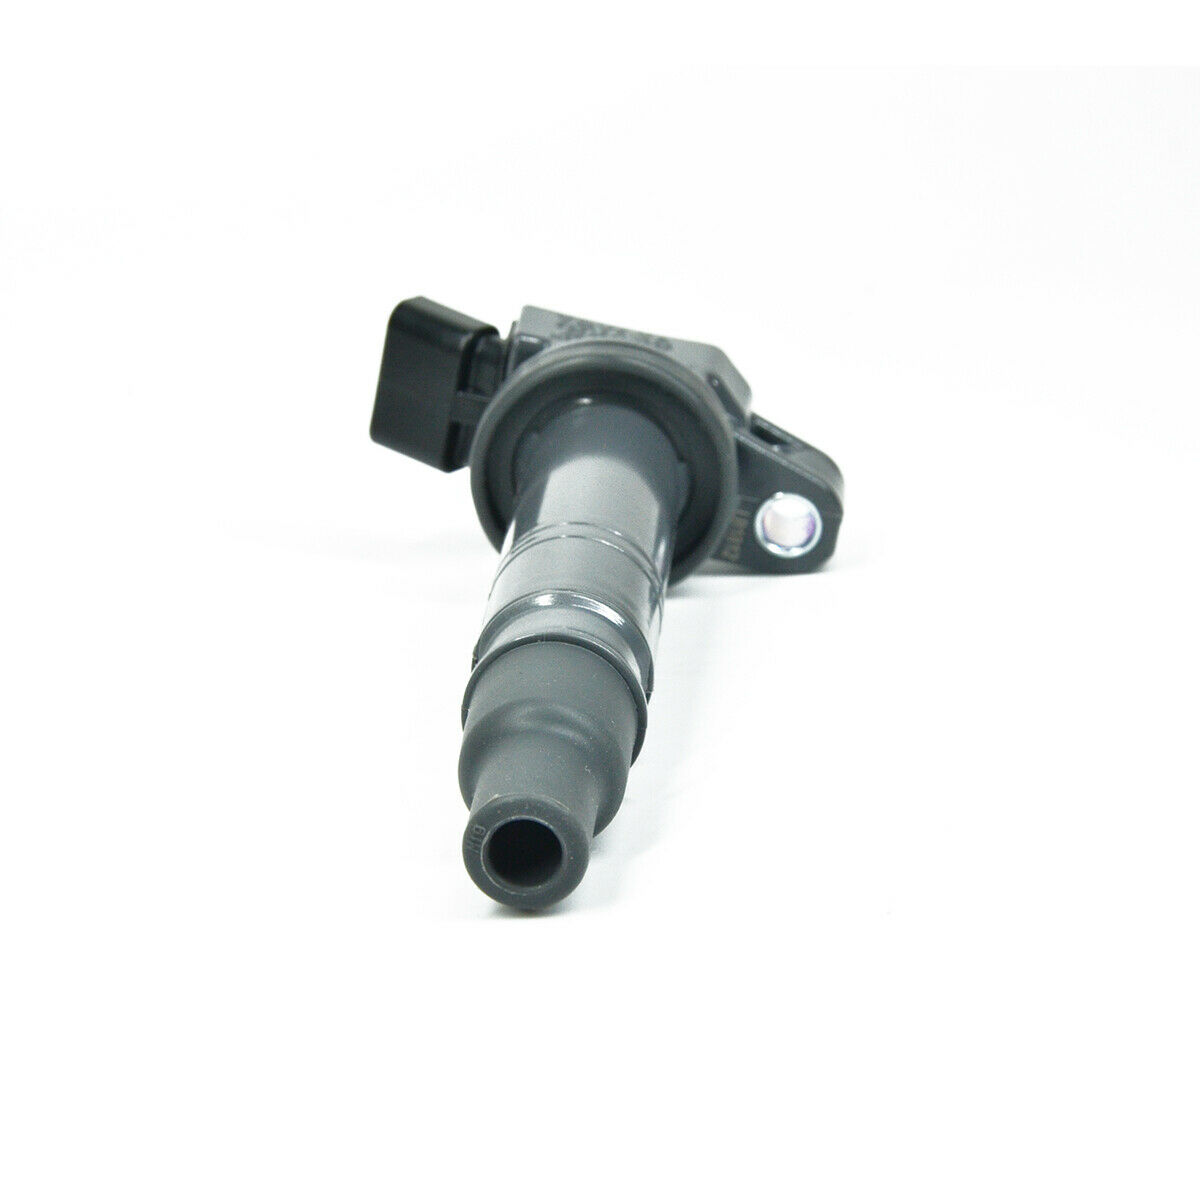 OEM 90919-02248 Ignition Coil for Toyota Tacoma Tundra Scion xB Lexus ISF <font><b>9091902248</b></font> image